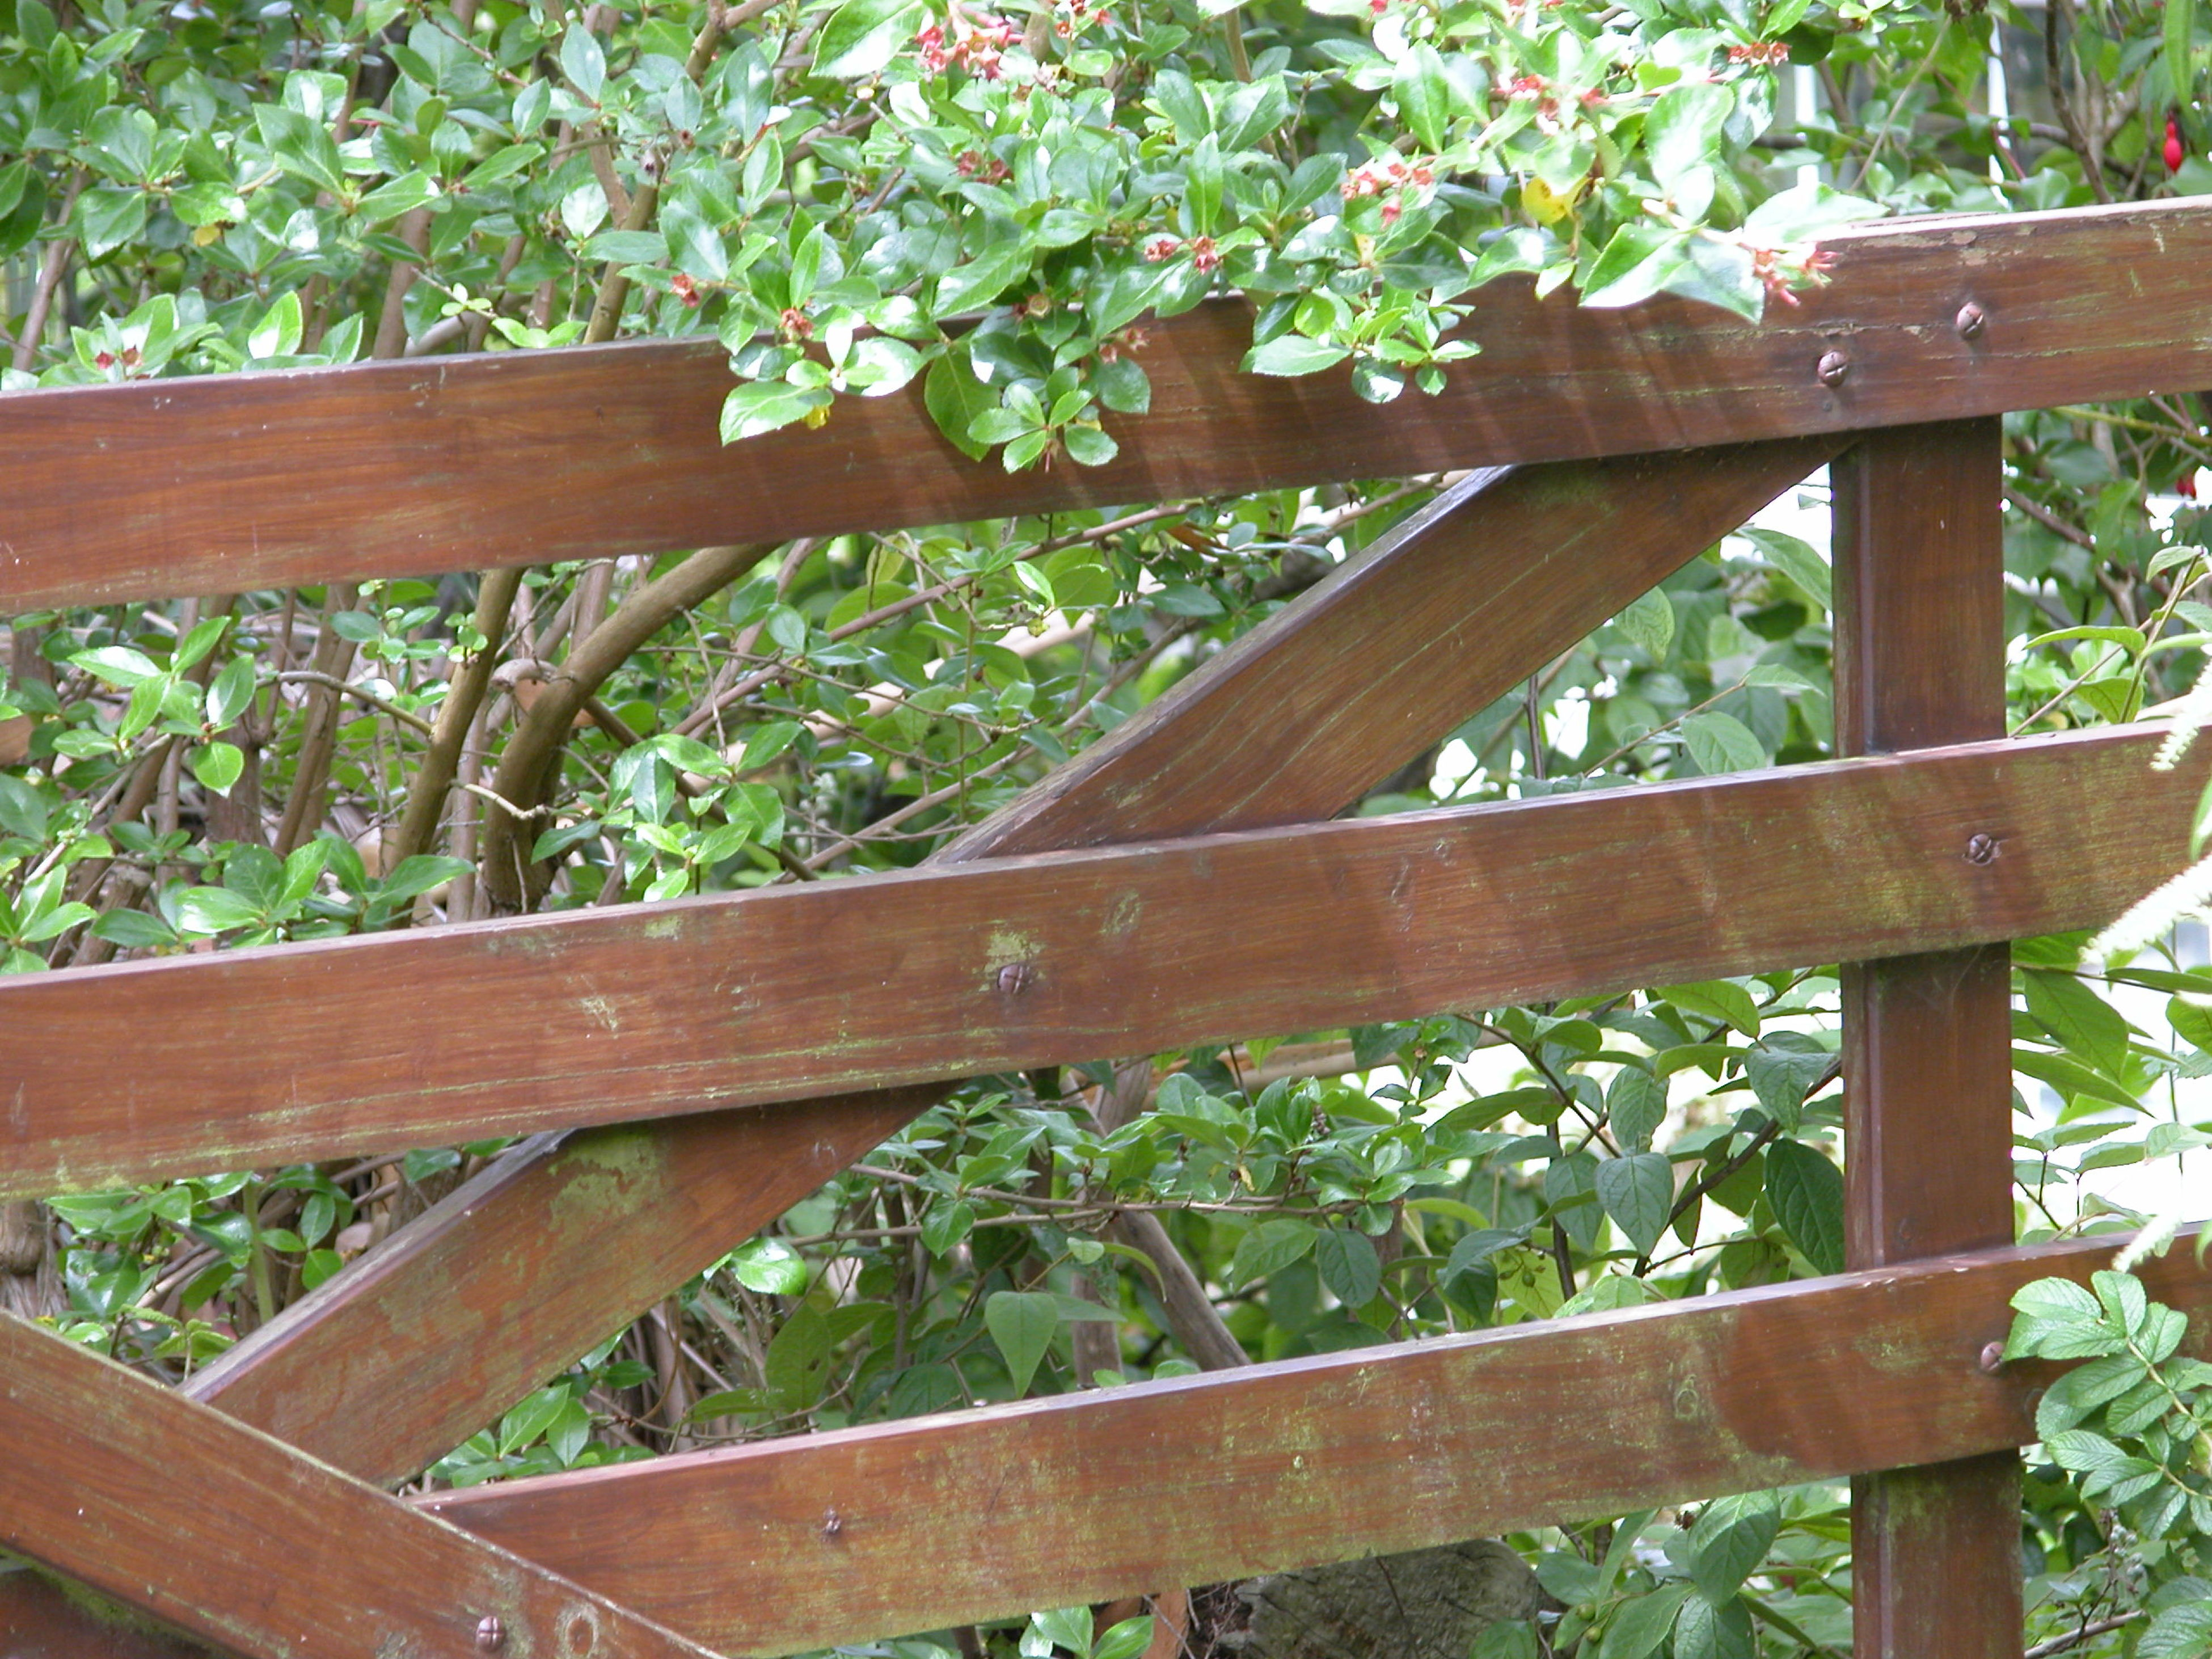 wood - material, wooden, tree, wood, railing, fence, growth, plank, green color, nature, plant, day, footbridge, no people, outdoors, branch, park - man made space, built structure, sunlight, close-up